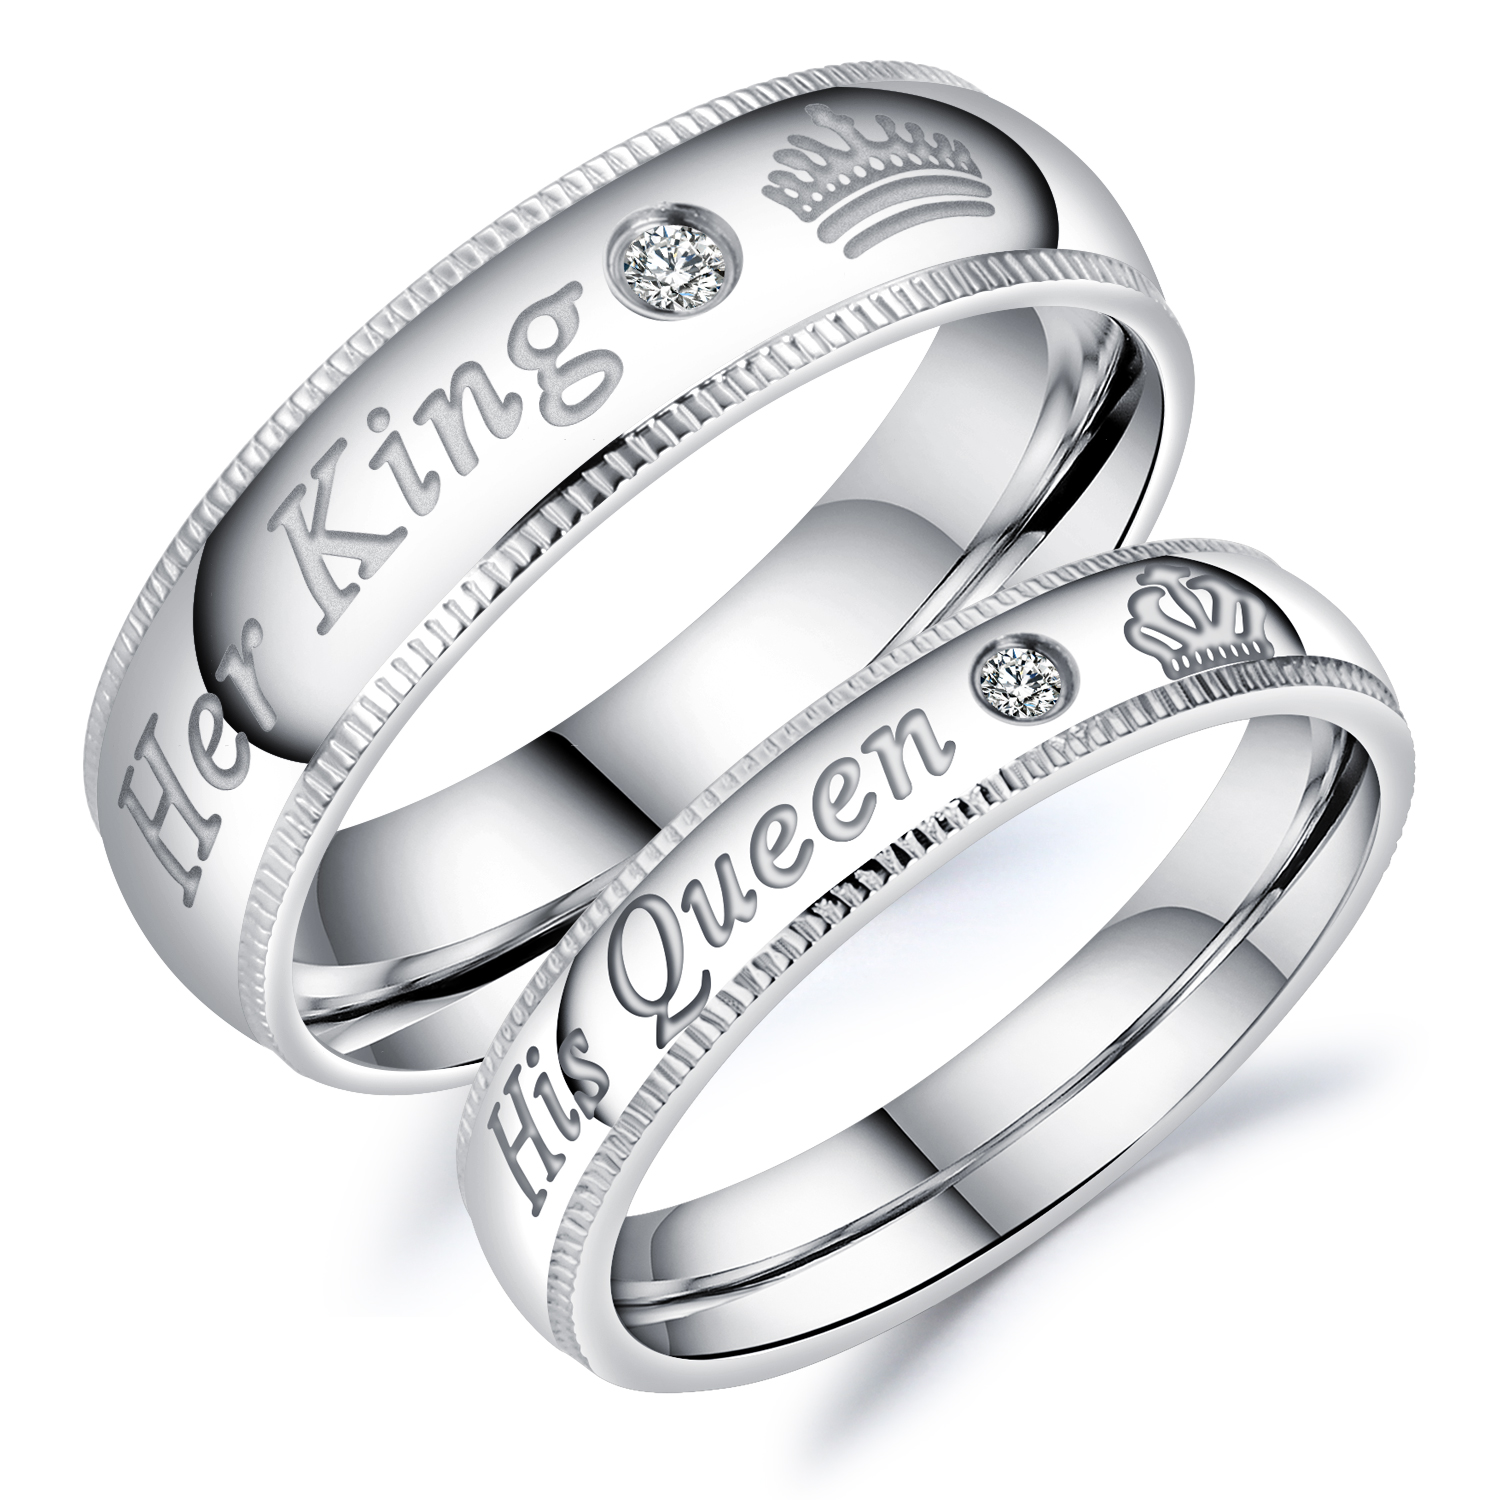 ring wedding fashion evermarker jewelry rings products az titanium steel engagement couple